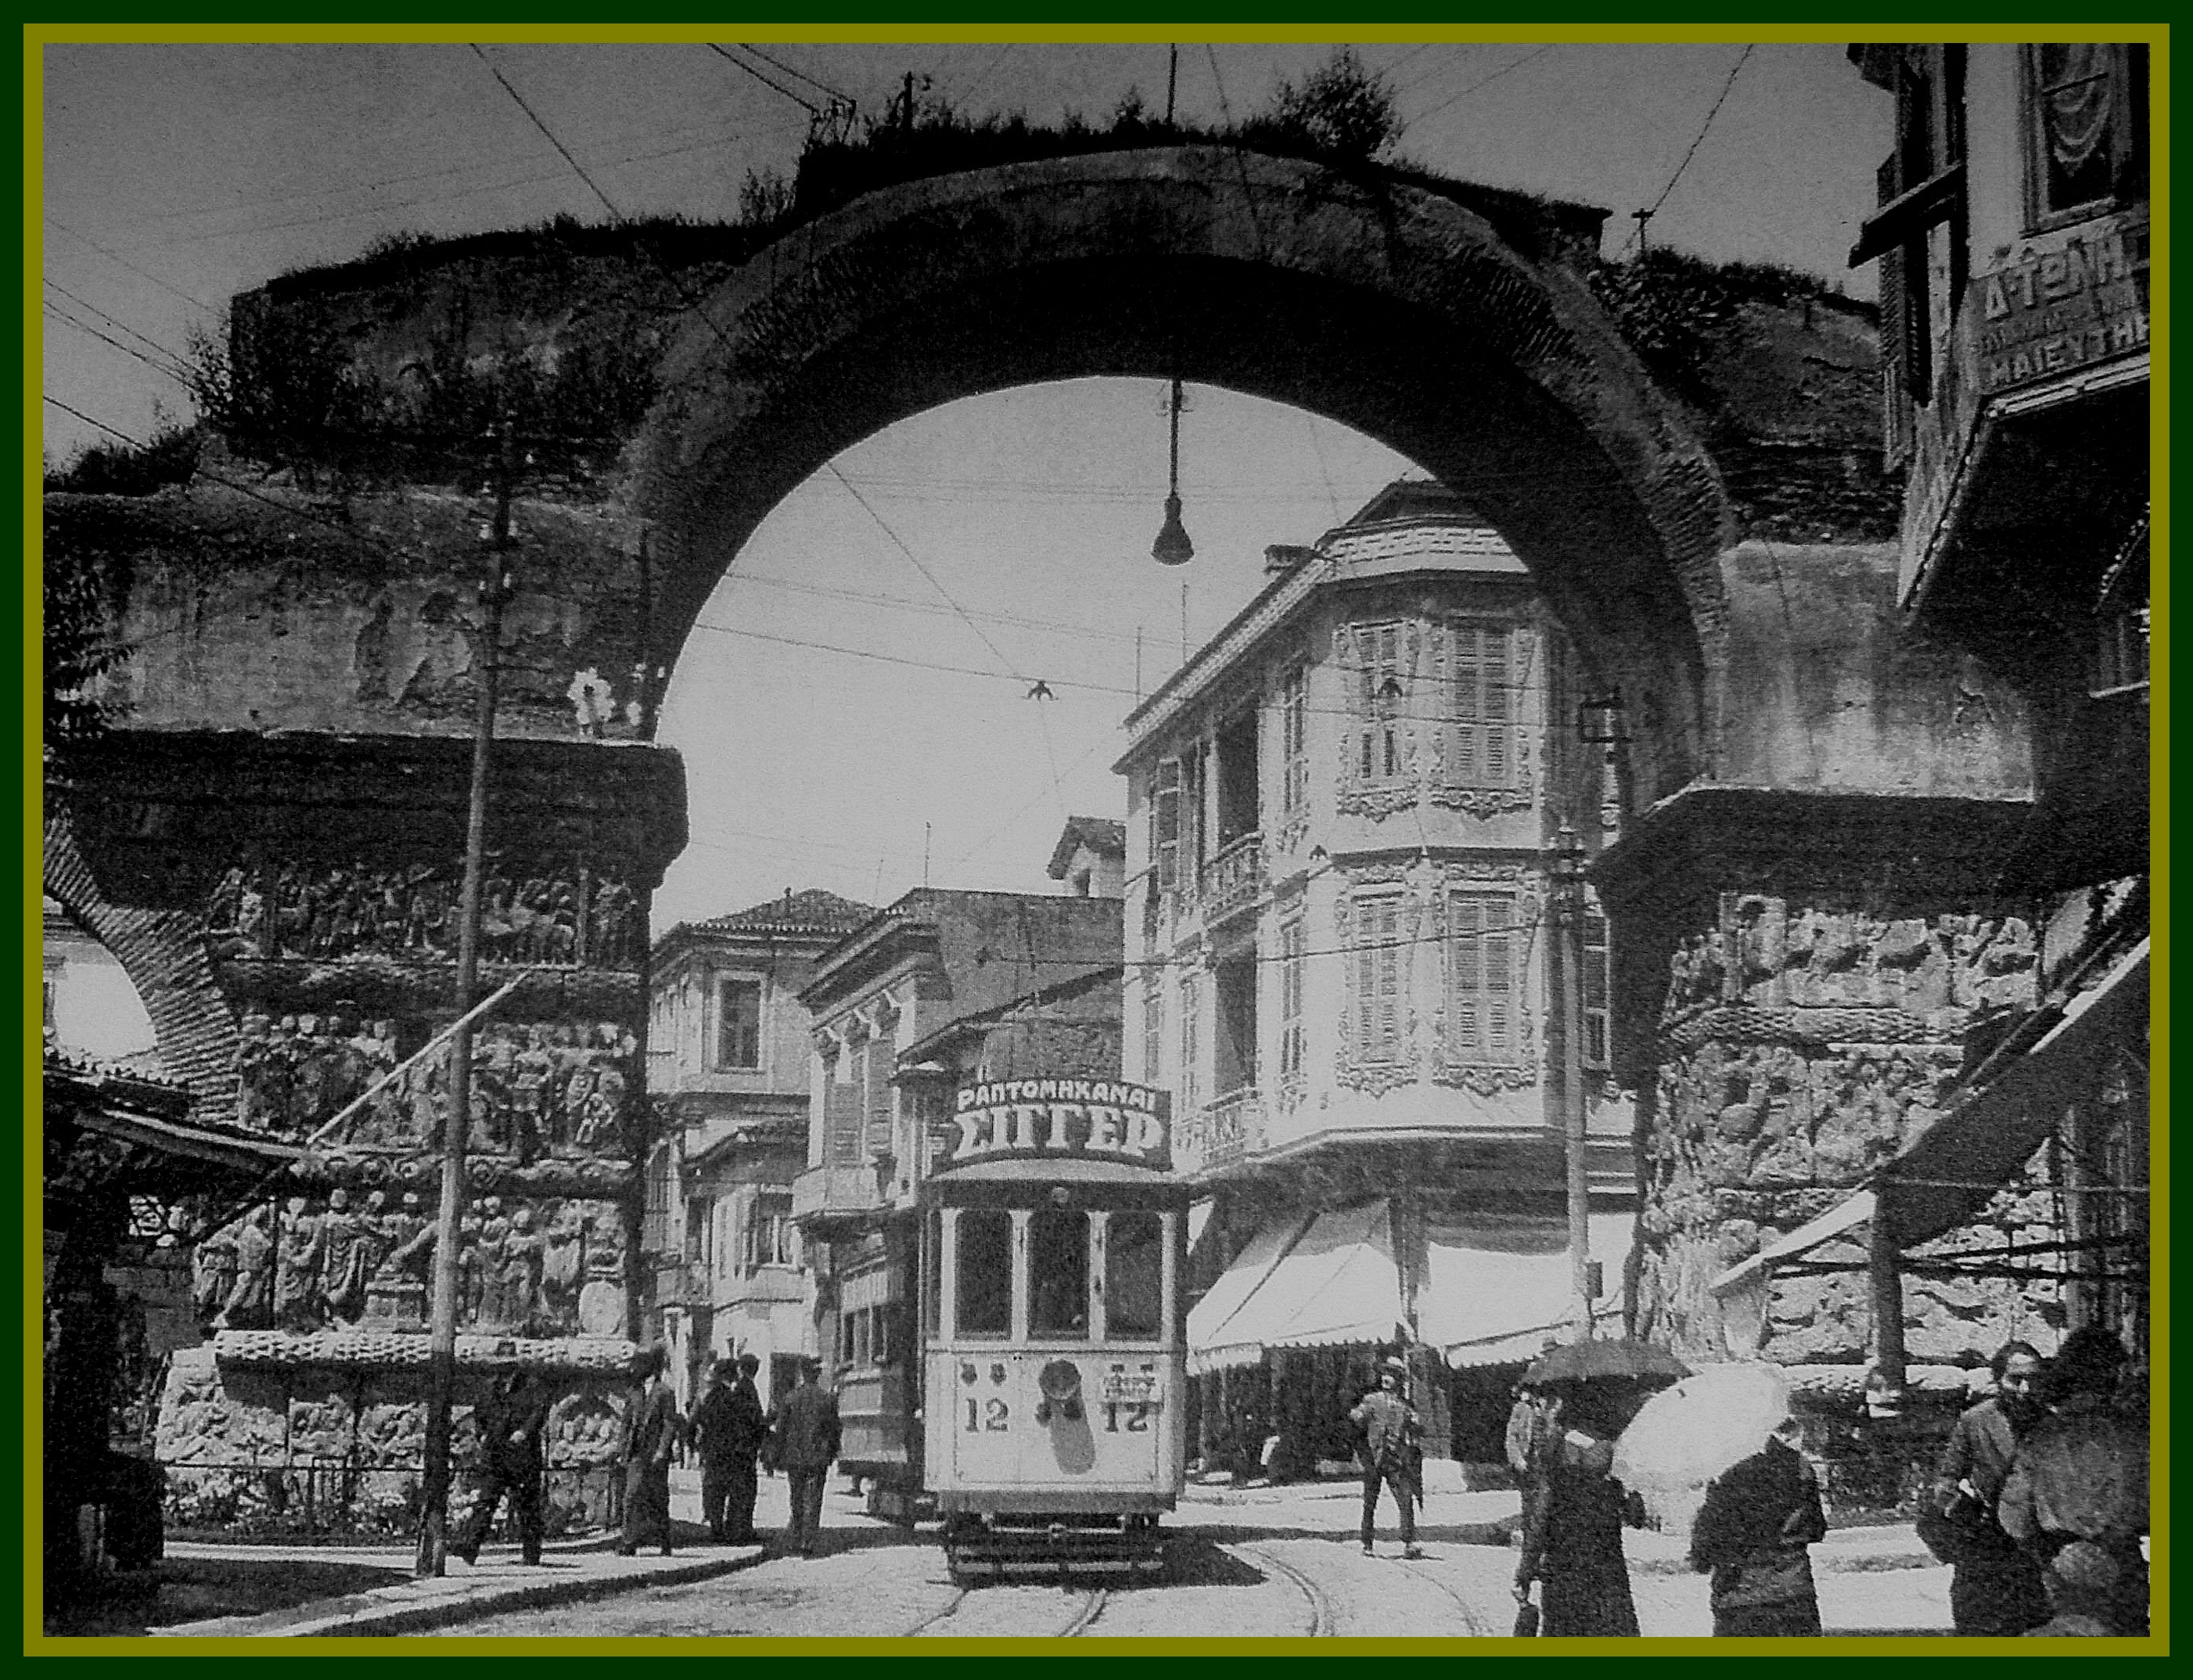 Arch of Galerius in 1930